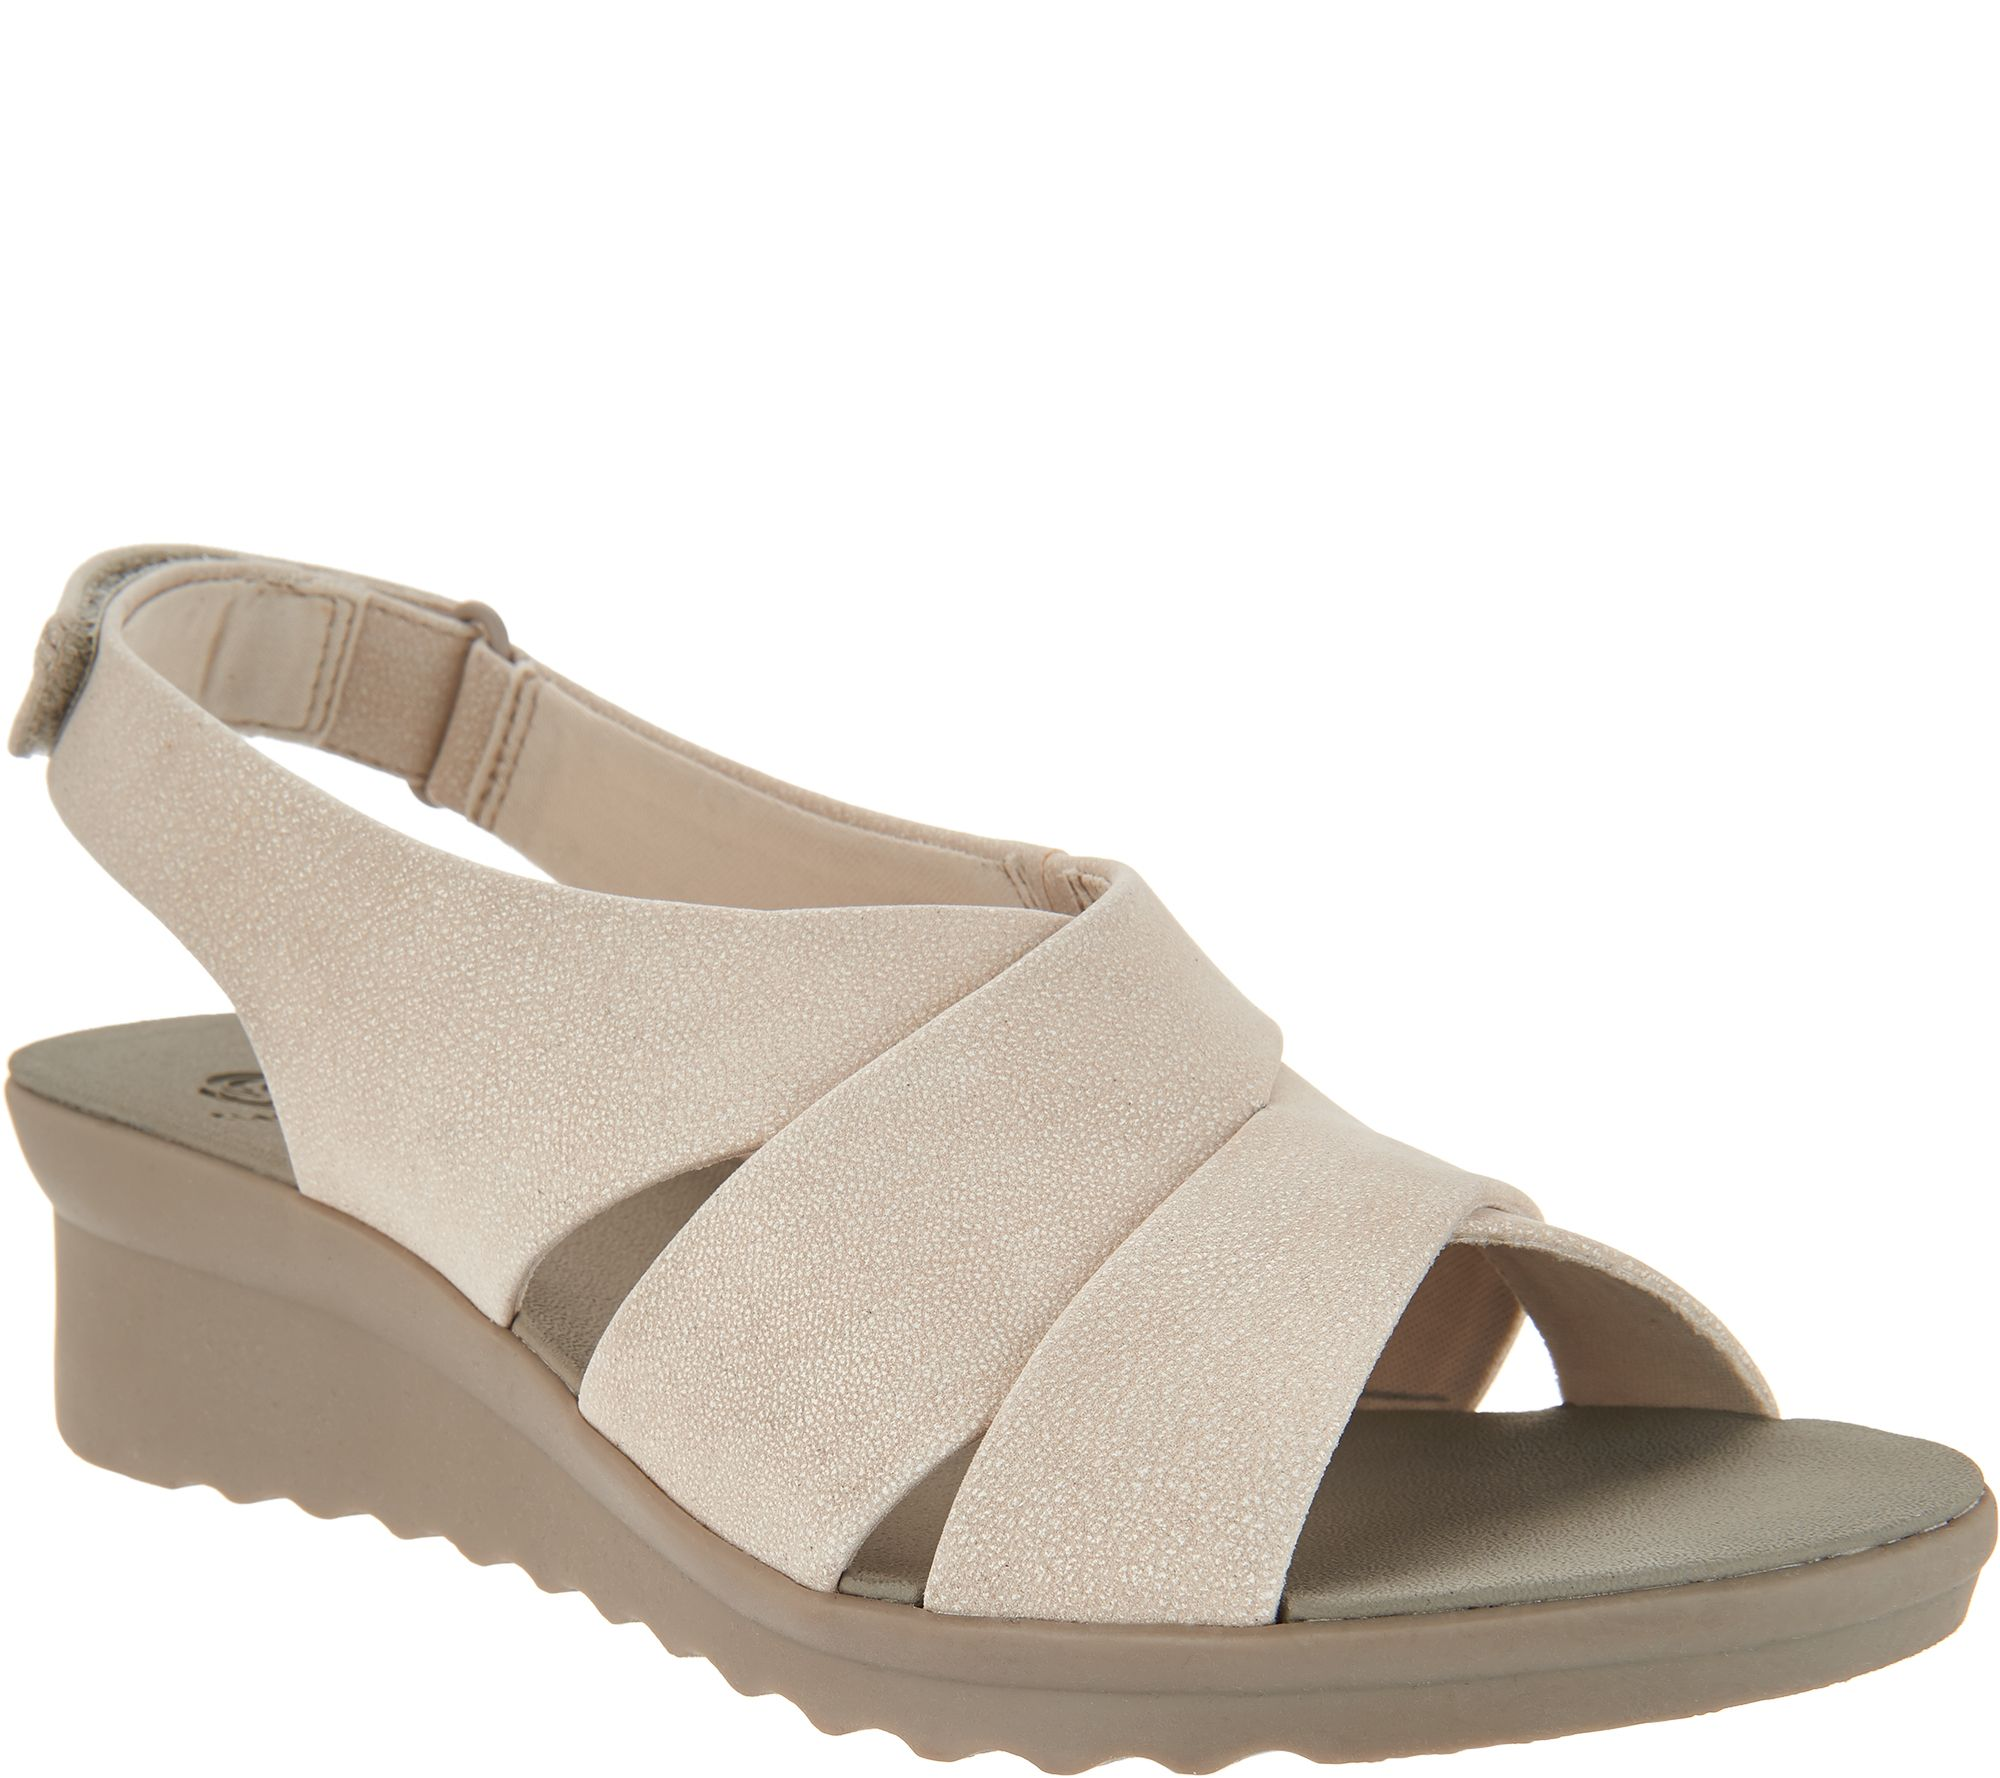 0d21c547023 CLOUDSTEPPERS by Clarks Wedge Sandals - Caddell Bright - Page 1 — QVC.com